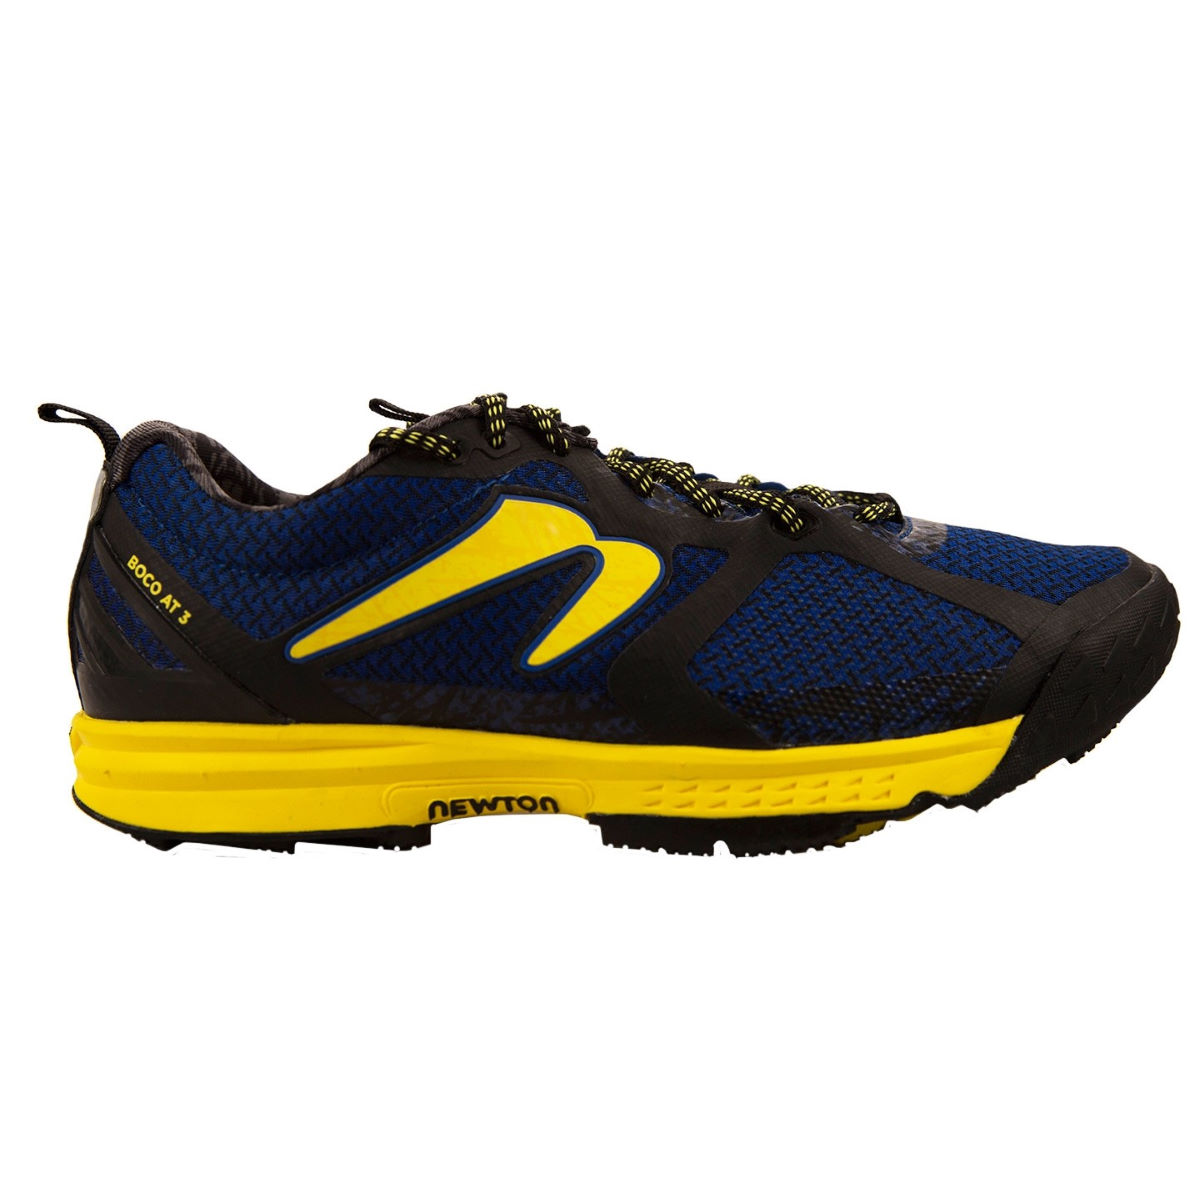 Newton Running Shoes Boco AT 3 Shoes - UK 11 Blue/Yellow